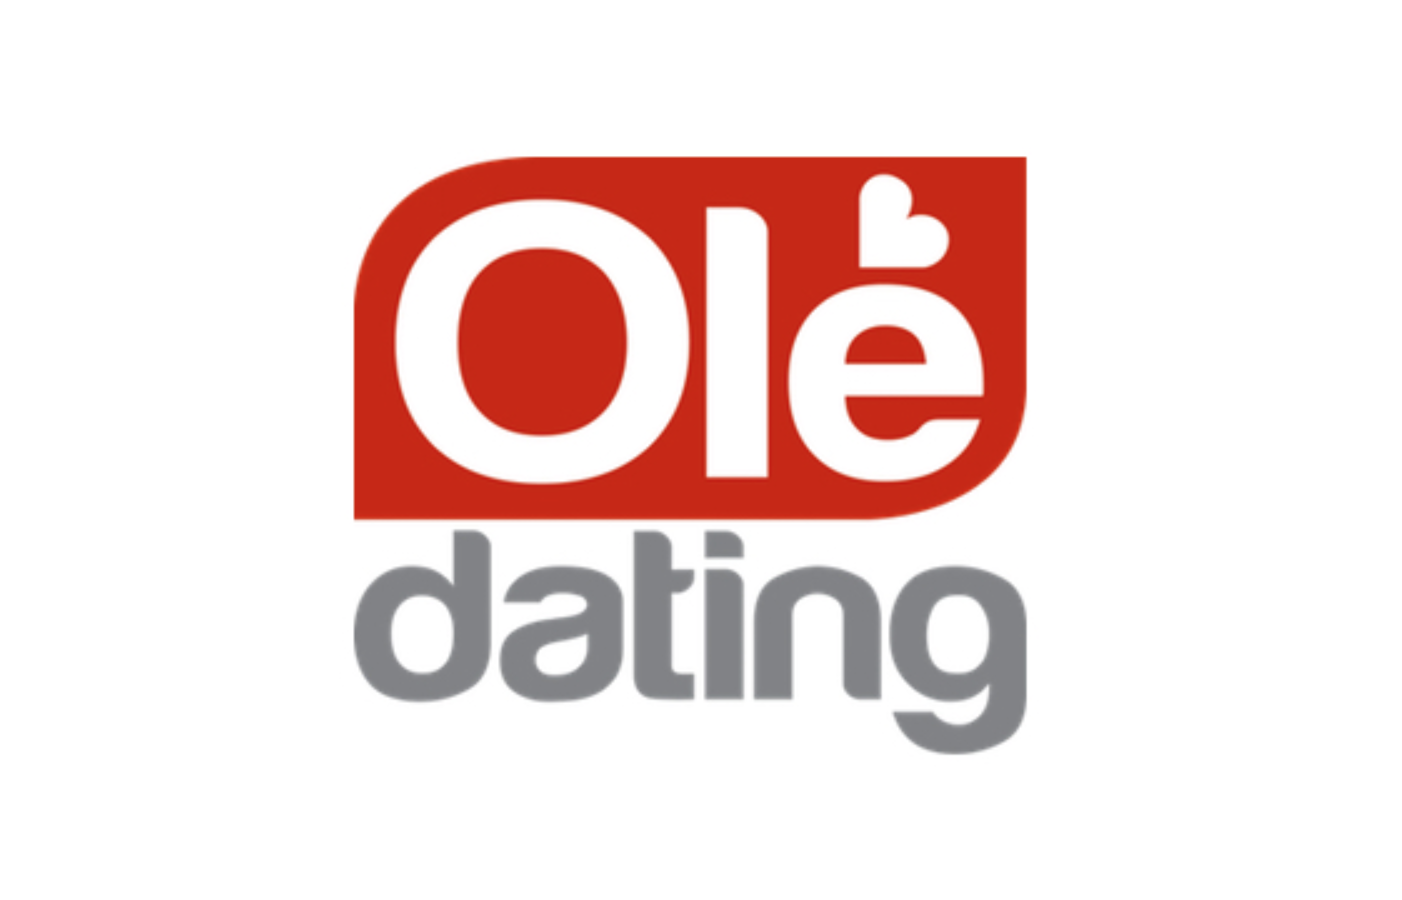 ole dating